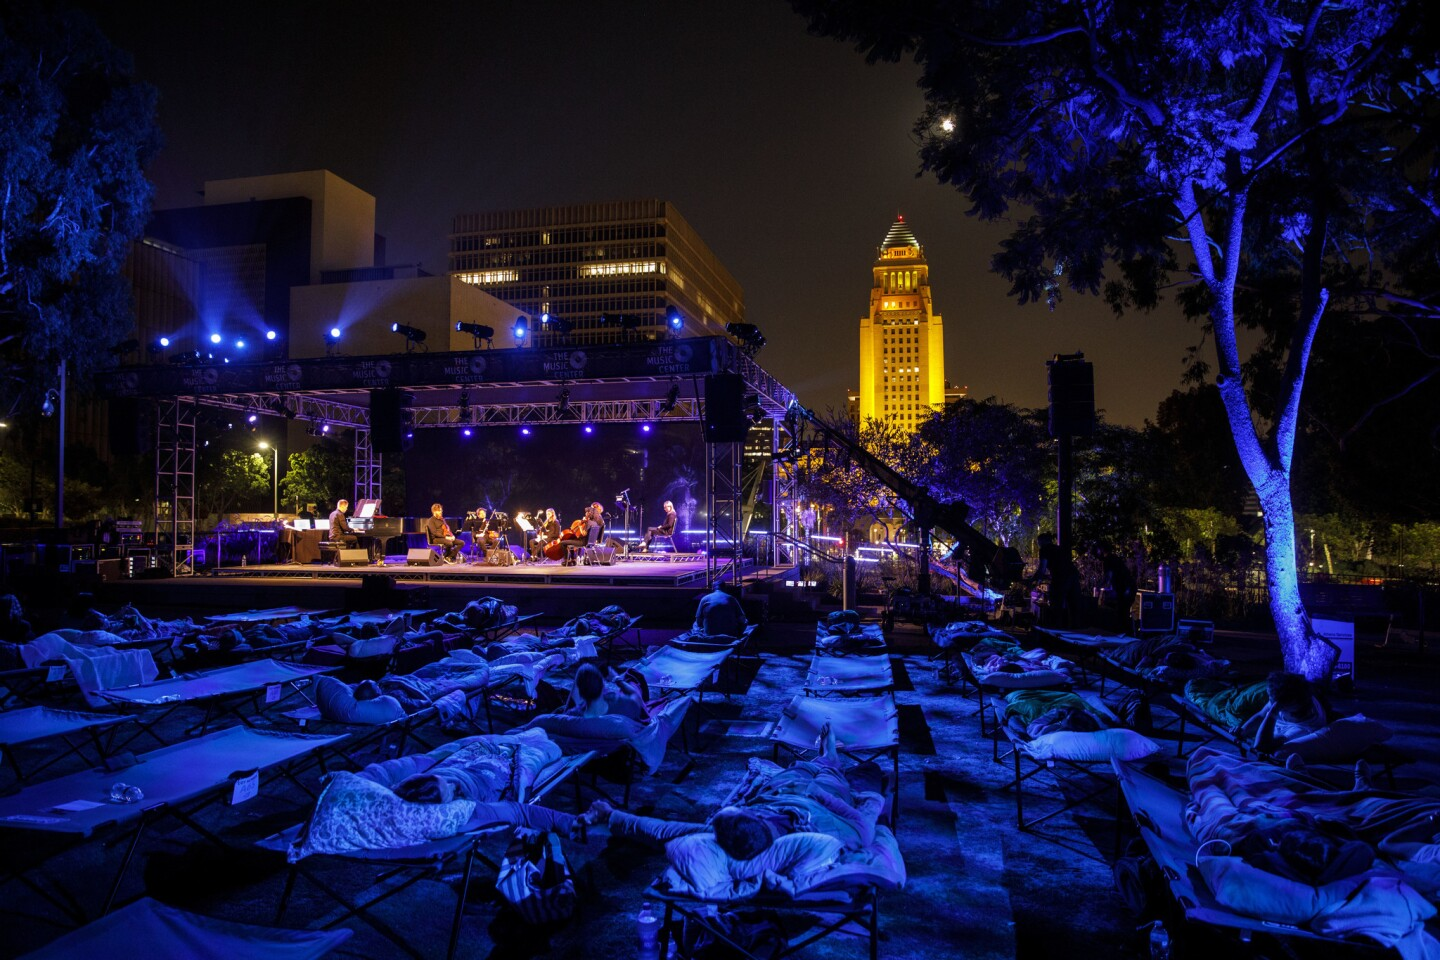 """Max Richter performs """"Sleep"""" as people lie in cots during a performance in Grand Park on Saturday, while L.A. City Hall is illuminated in gold to honor the late Los Angeles Times food critic Jonathan Gold."""